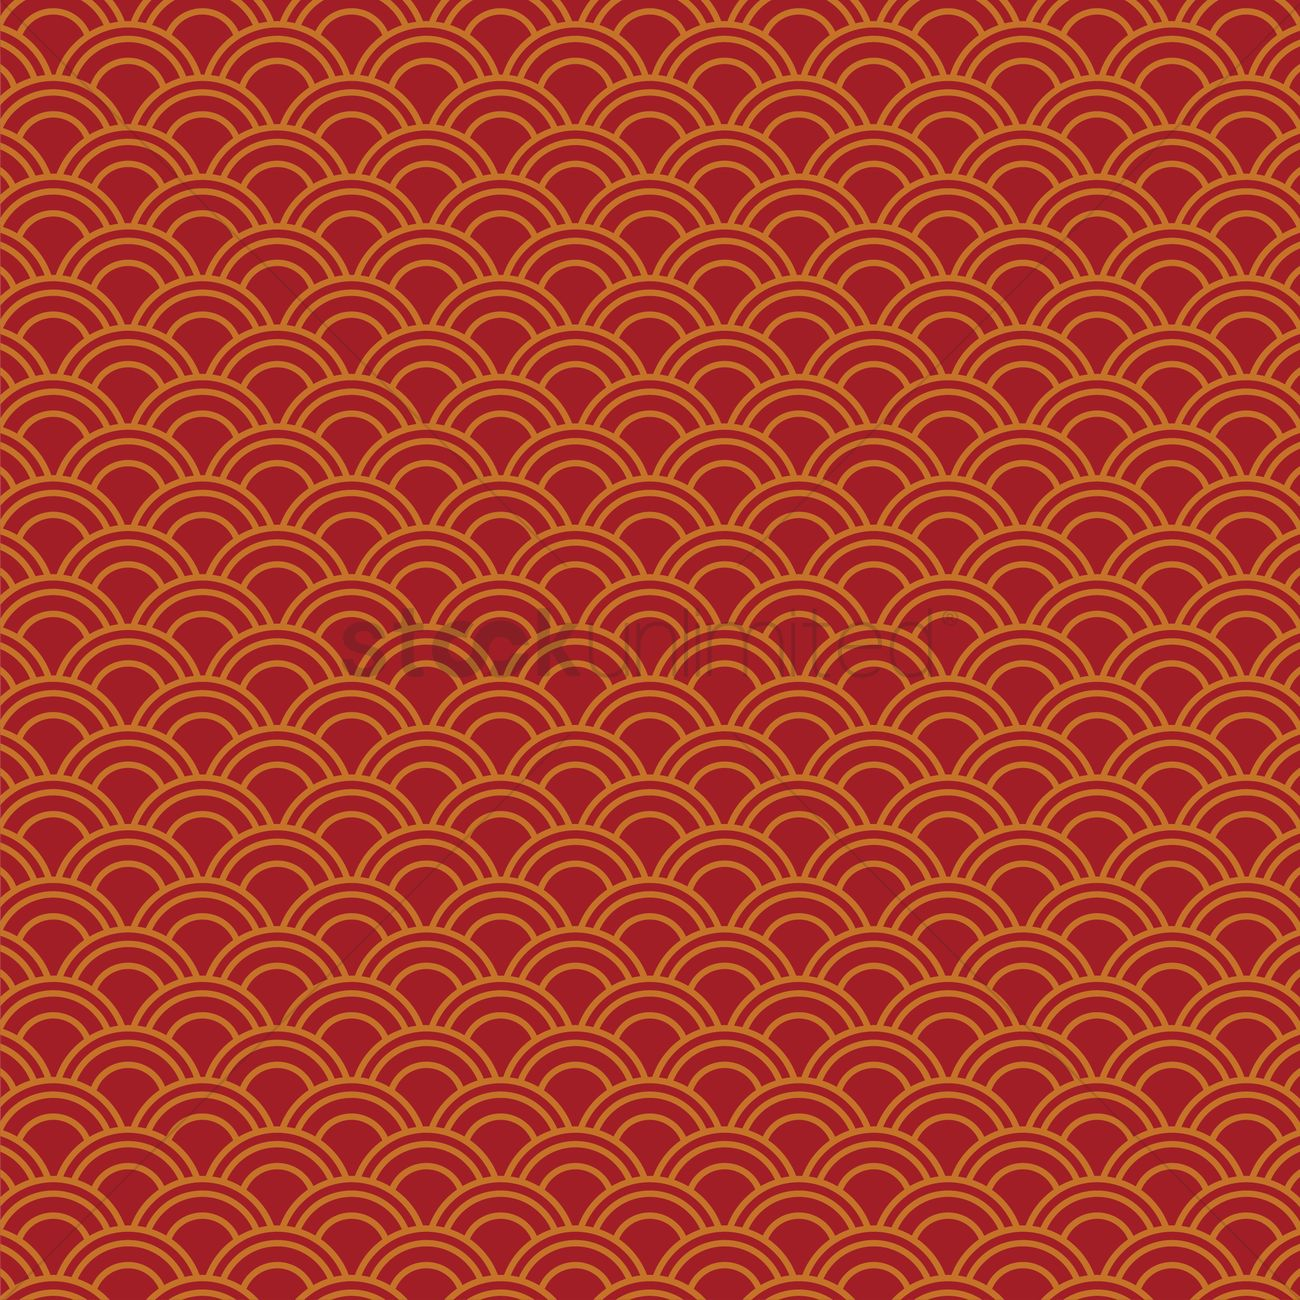 Old Paper Wallpaper Hd Chinese Pattern Background Vector Image 1577039